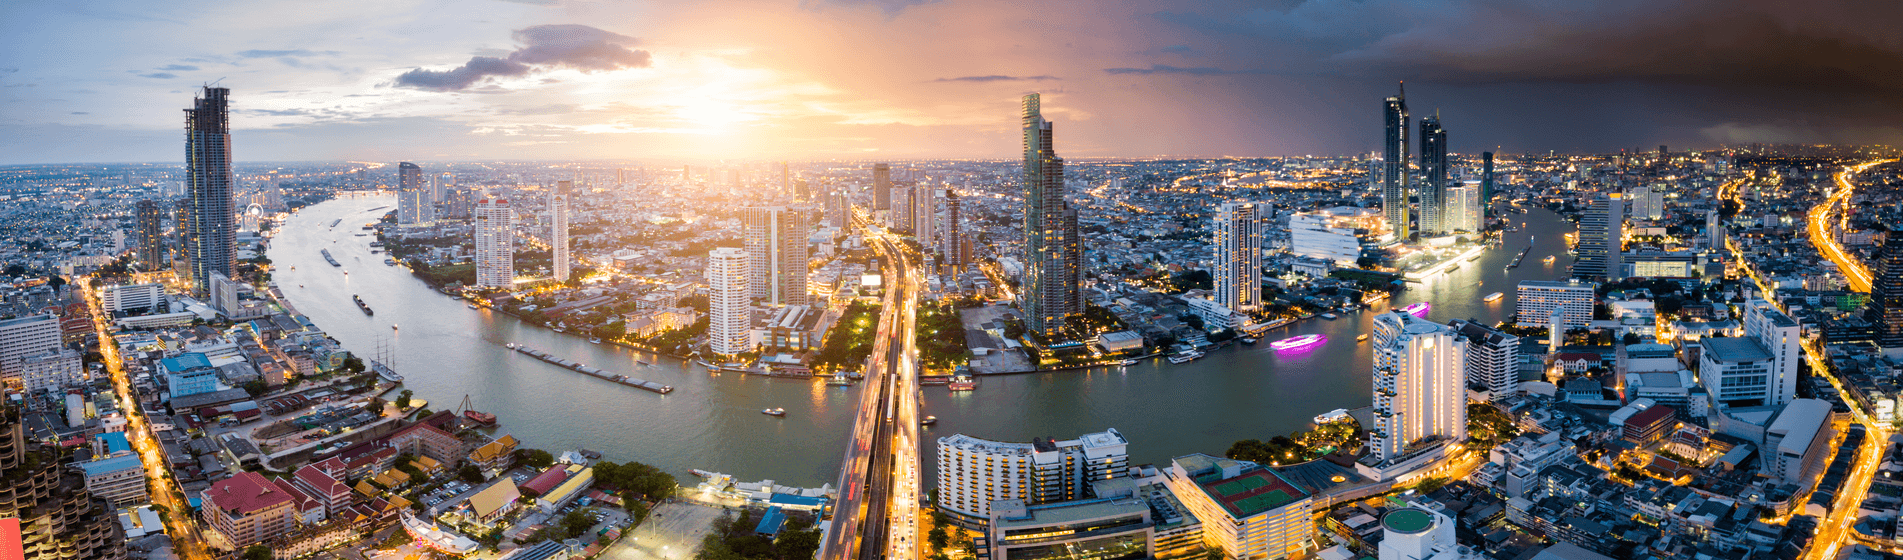 Frontier And Emerging Market Investment Guide - Bangkok, Thailand